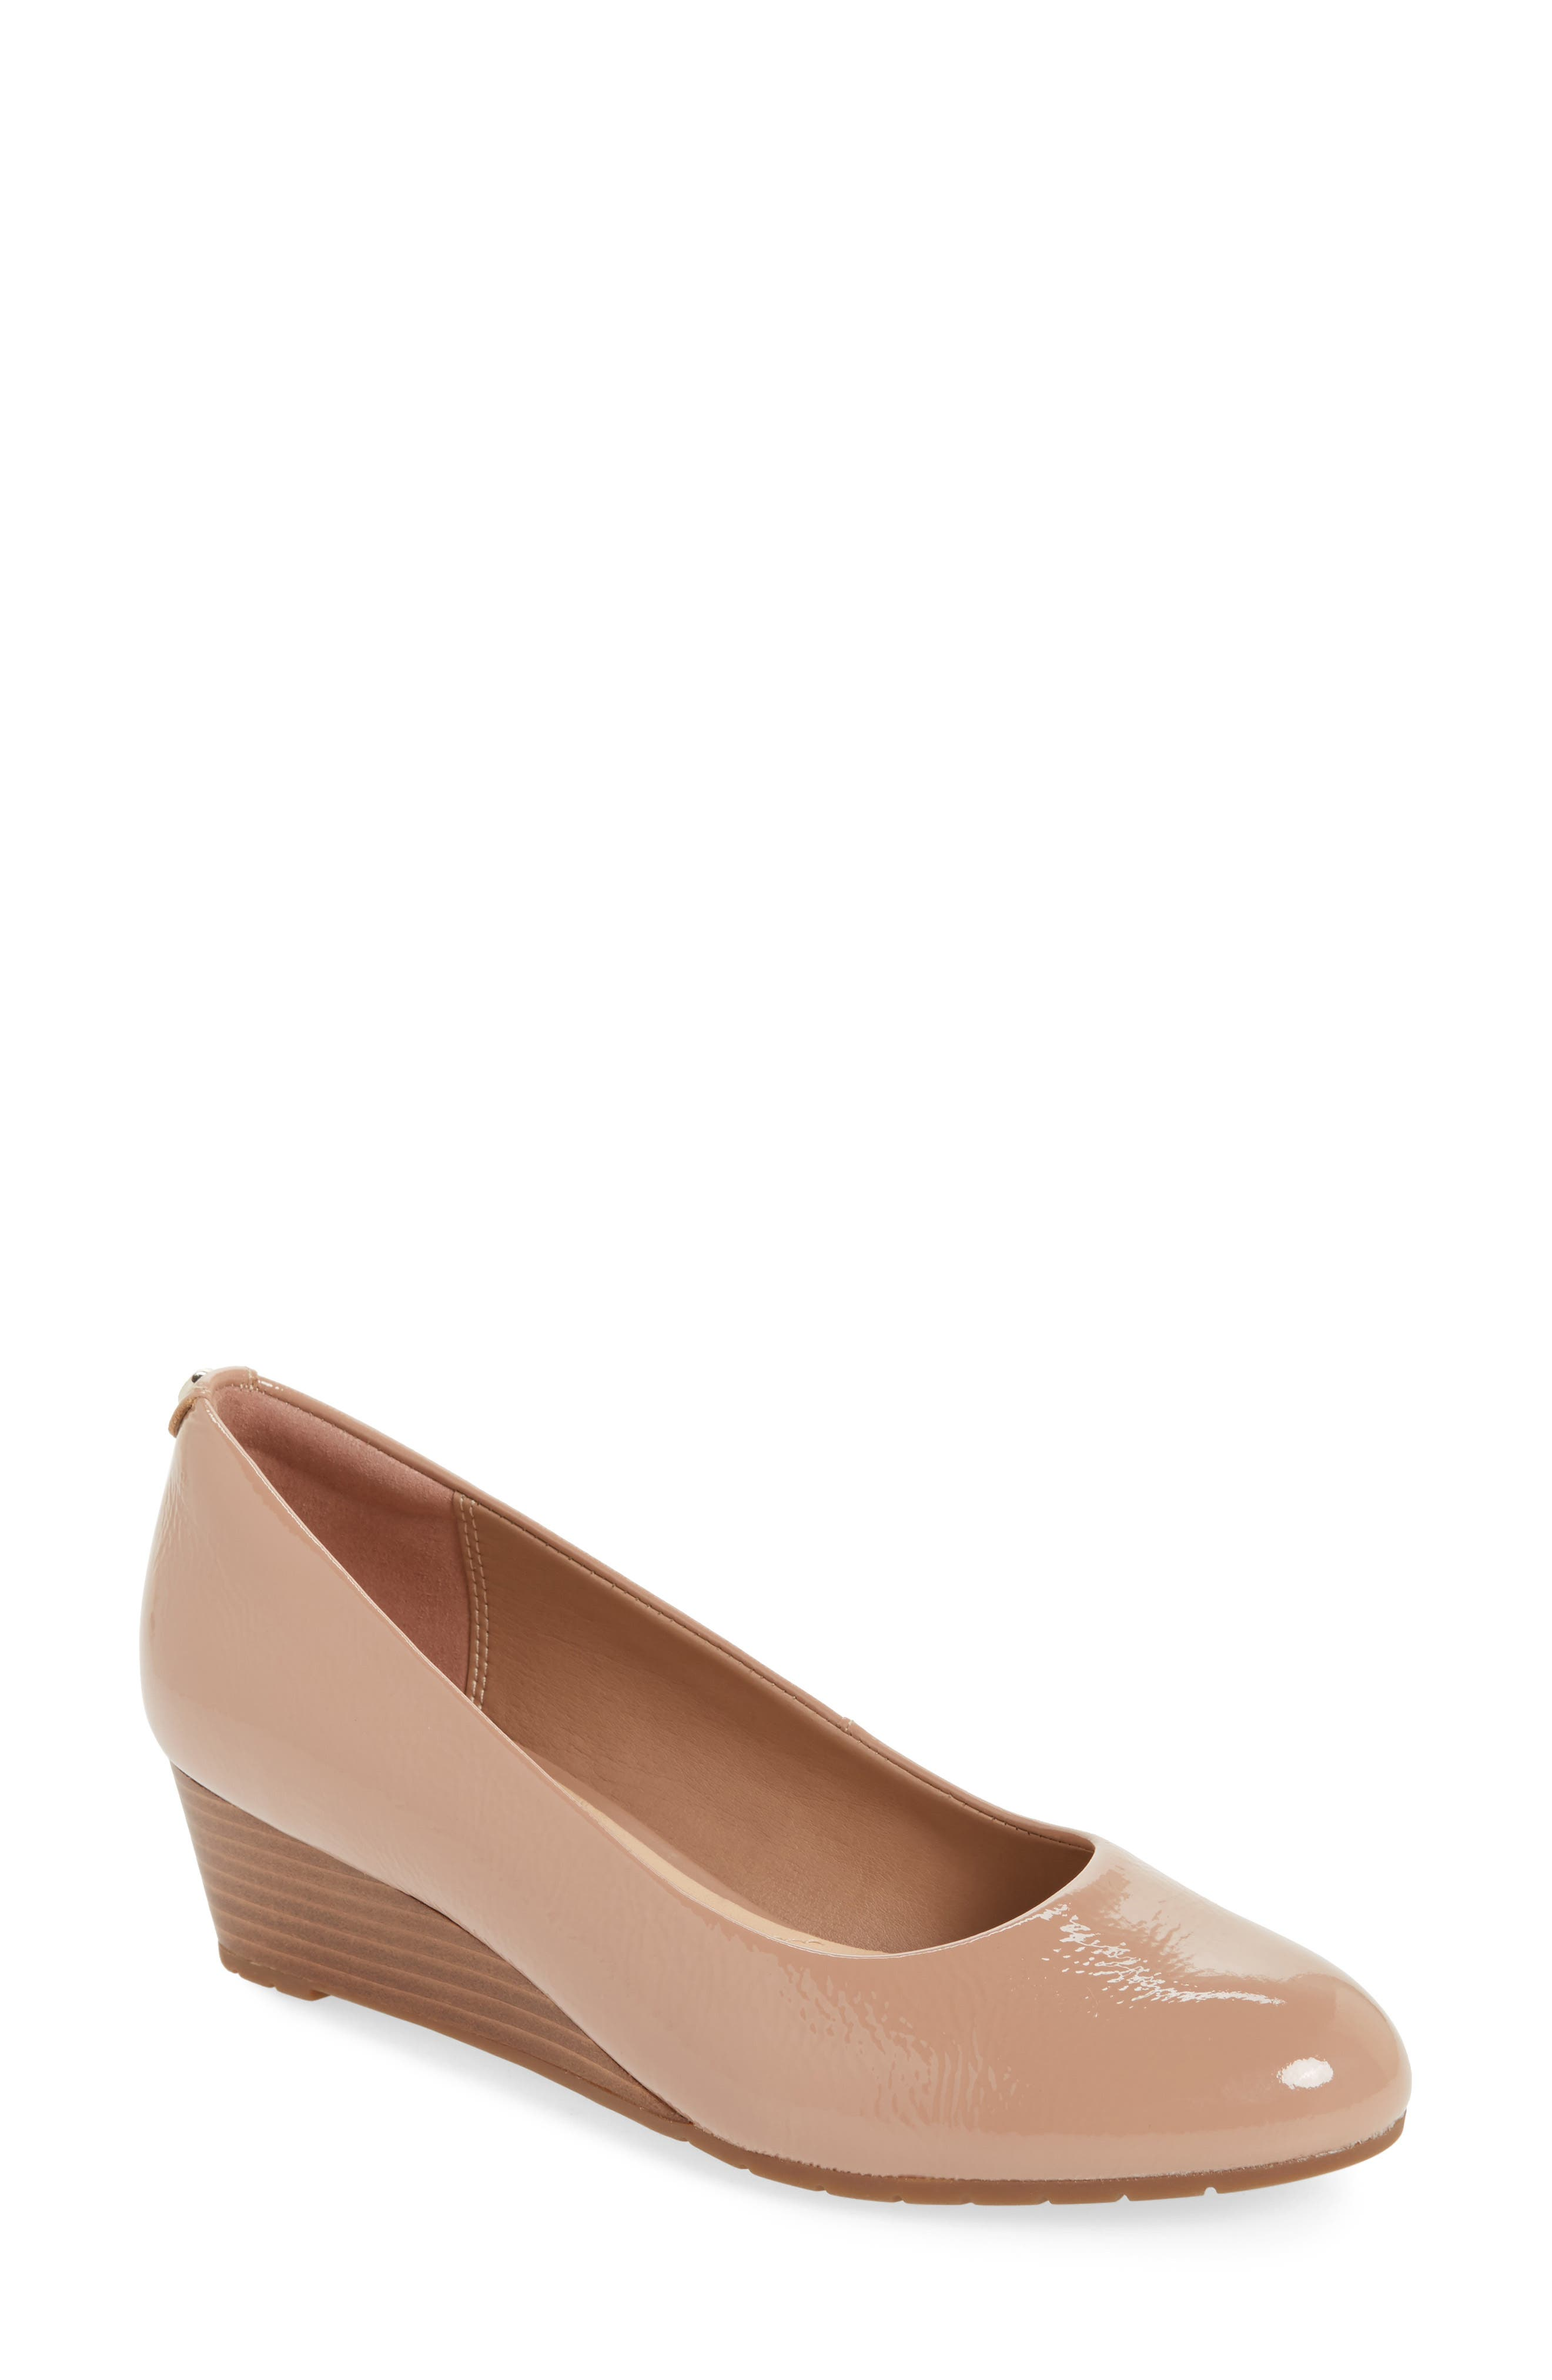 Vendra Bloom Wedge Pump,                         Main,                         color, Beige Patent Leather